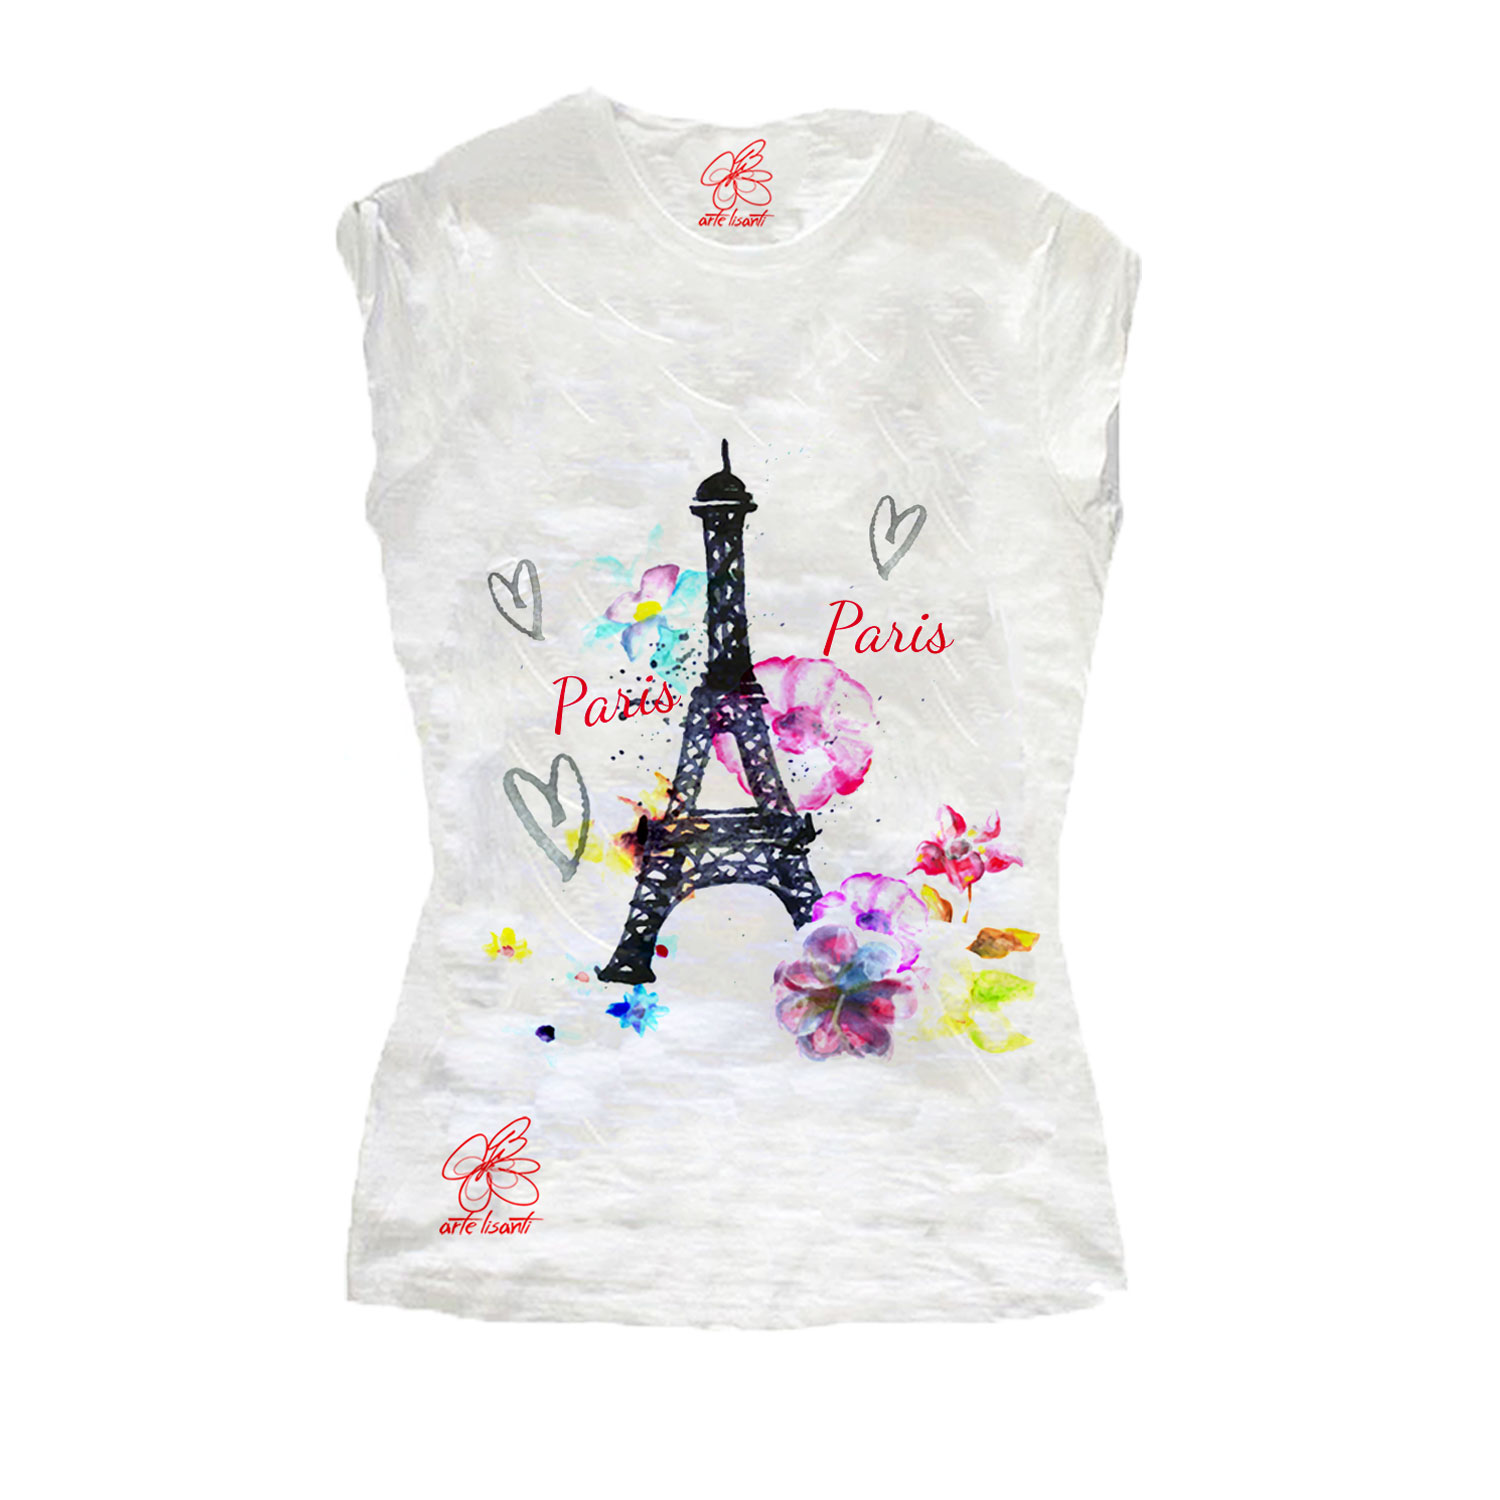 Hand-painted T-shirts - Paris Paris